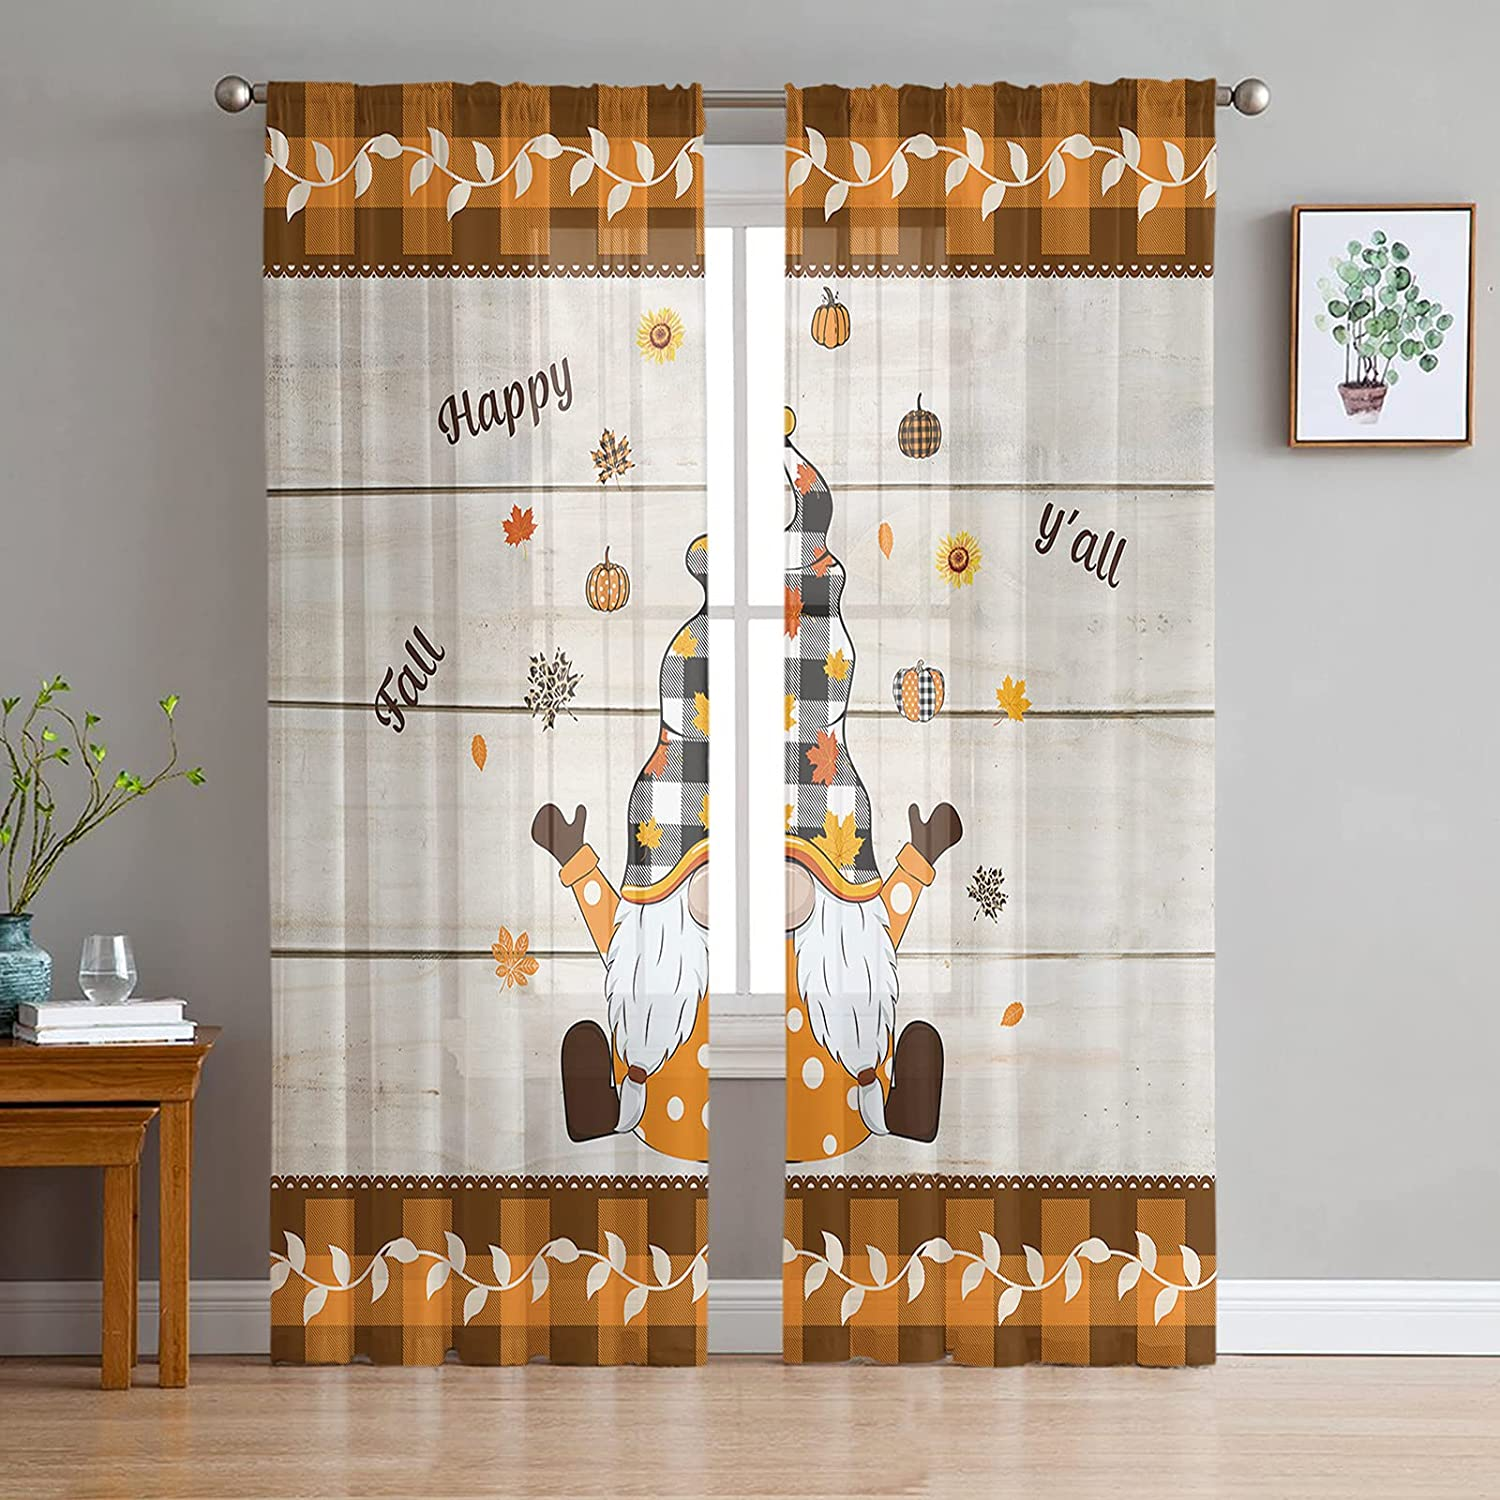 2 Max 90% OFF Panels Semi Sheer Voile Fall Happy Thanksgiving Curtains Ranking TOP19 Y'all